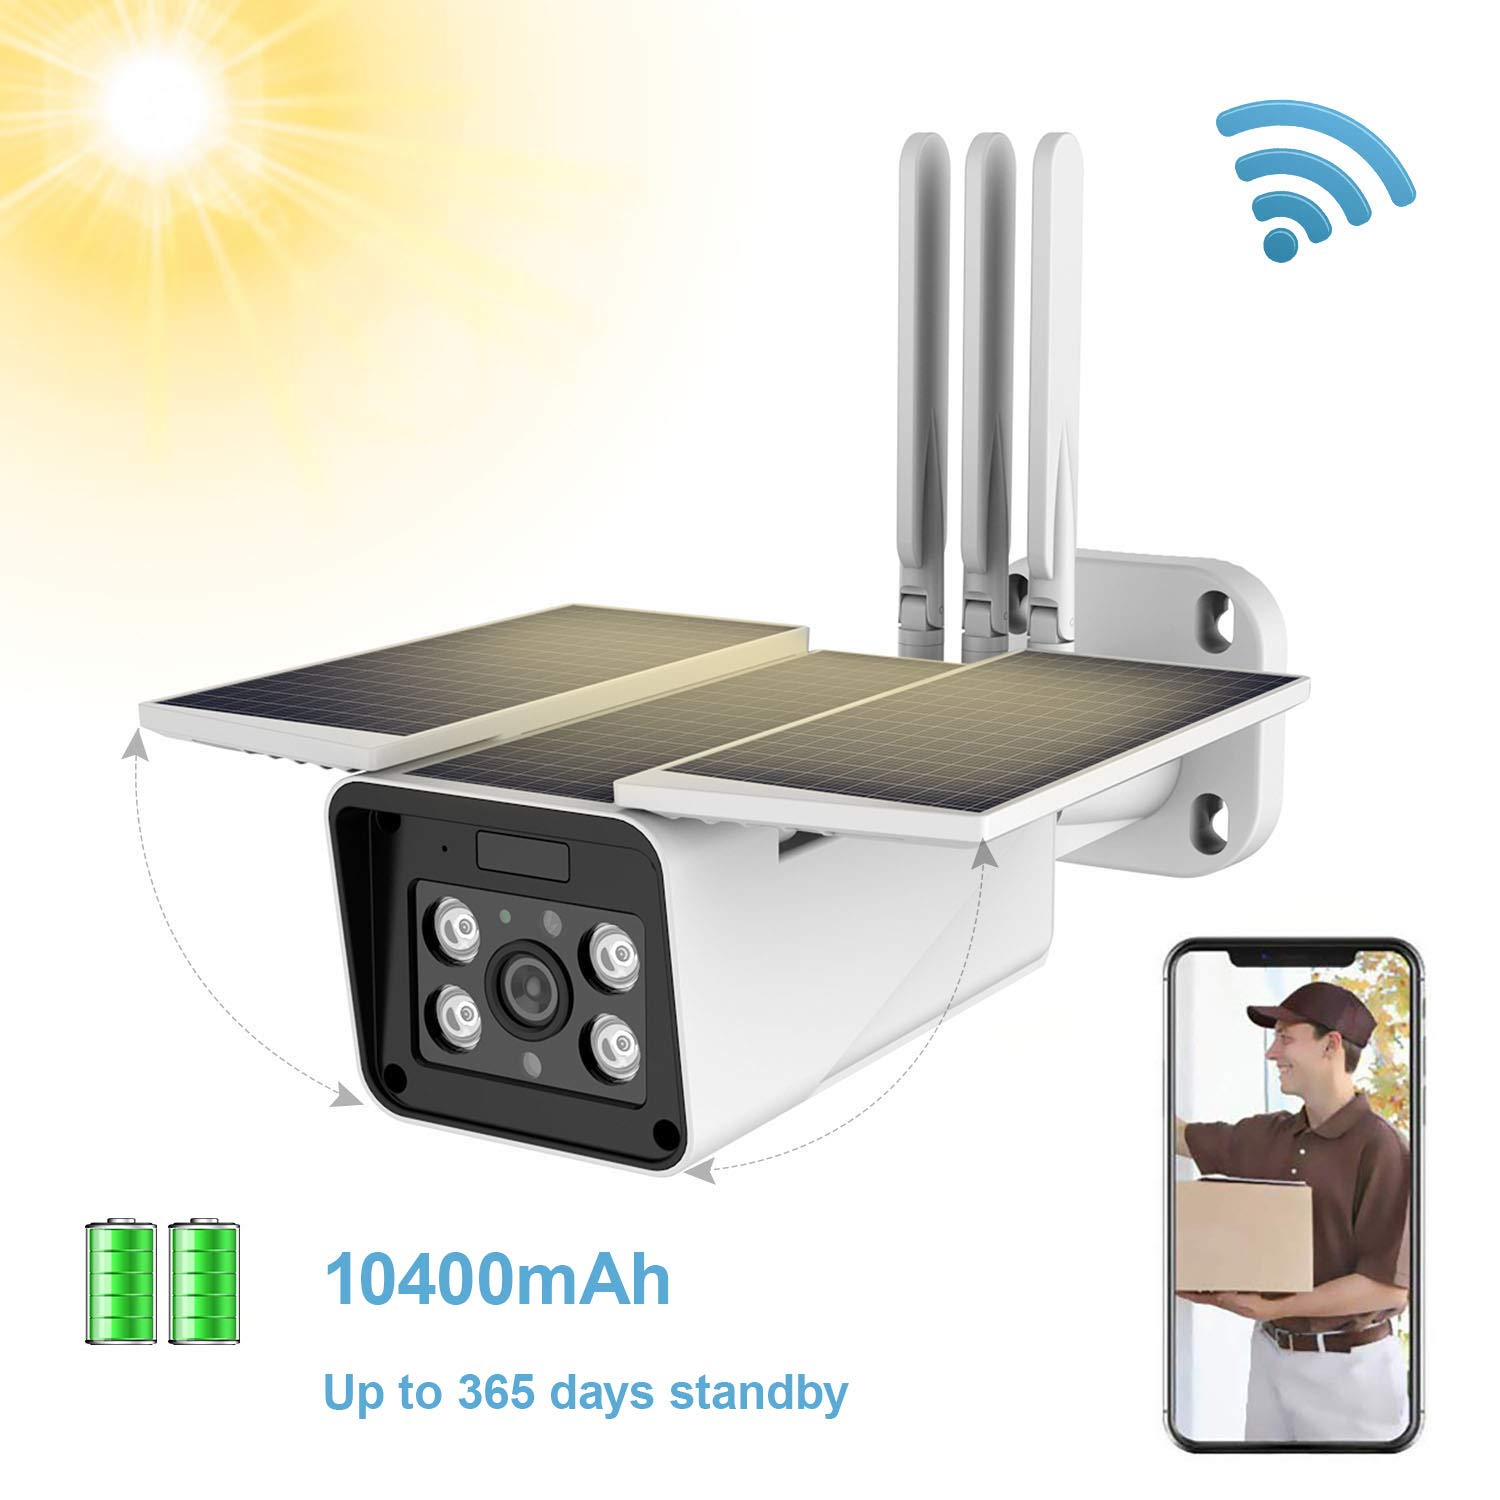 Outdoor Solar Battery Powered Wireless Security Camera,STUCAM 1080P Wirefree CCTV Video Surveillance Camera with 10400mah Battery,Night Vision,Motion Detection,IP67 Waterproof,2-Way Audio Wi-Fi IP Cam by EASEIC